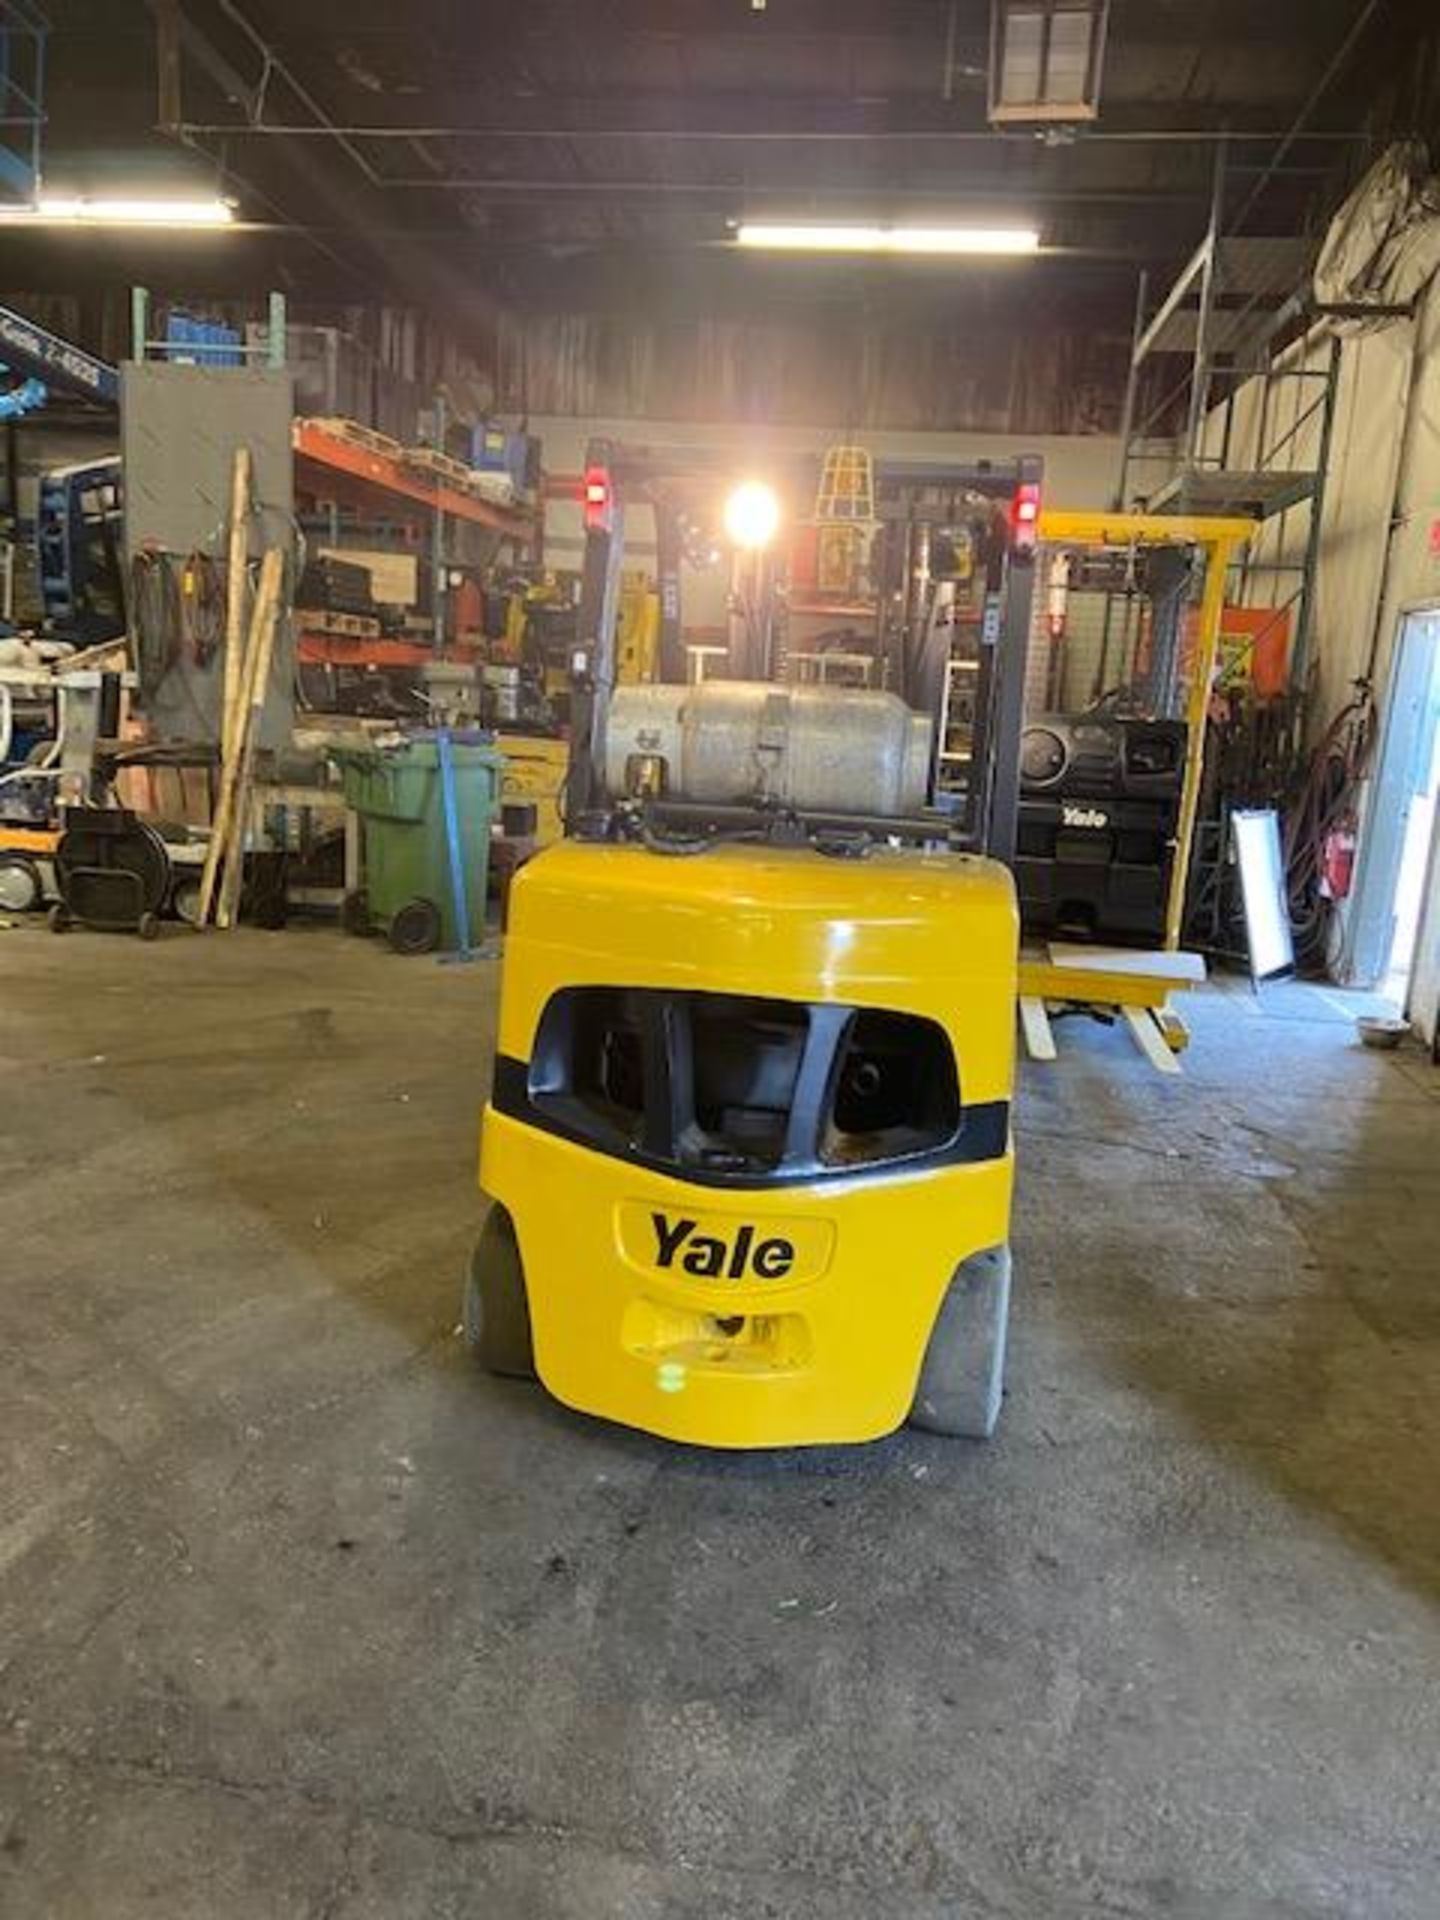 """FREE CUSTOMS - 2009 Yale 10,000lbs Forklift with sideshift 3-stage mast LPG (propane) 54"""" forks - Image 3 of 3"""